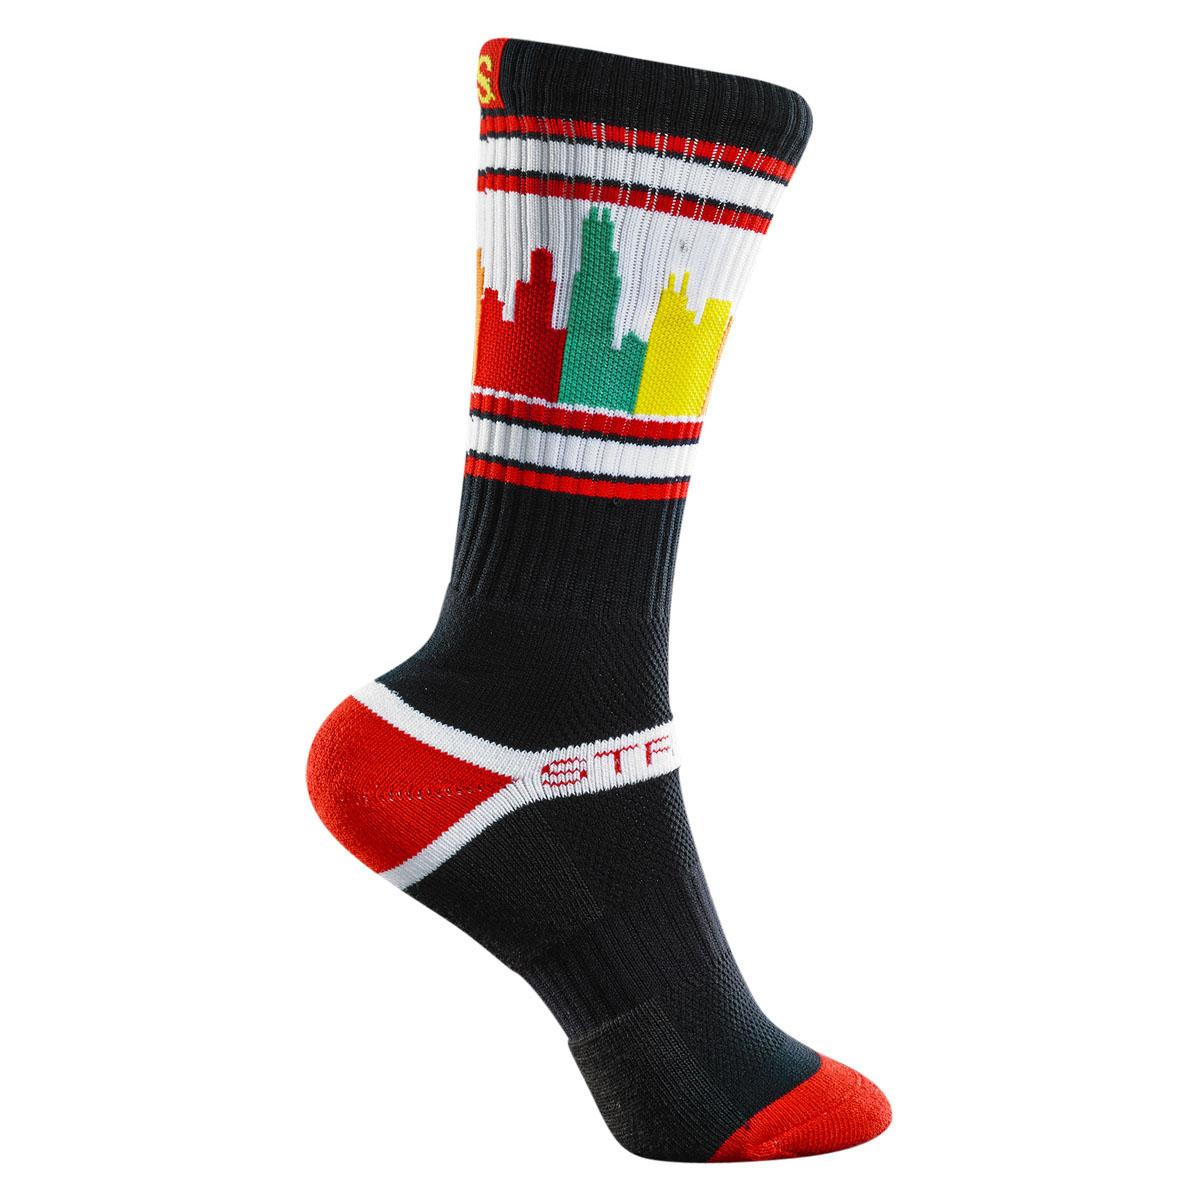 New brand available at http://t.co/bXdxUyy1sI - #StrideLine #crew #socks . City and S collection. More coming soon... http://t.co/XKSDP3wSq0